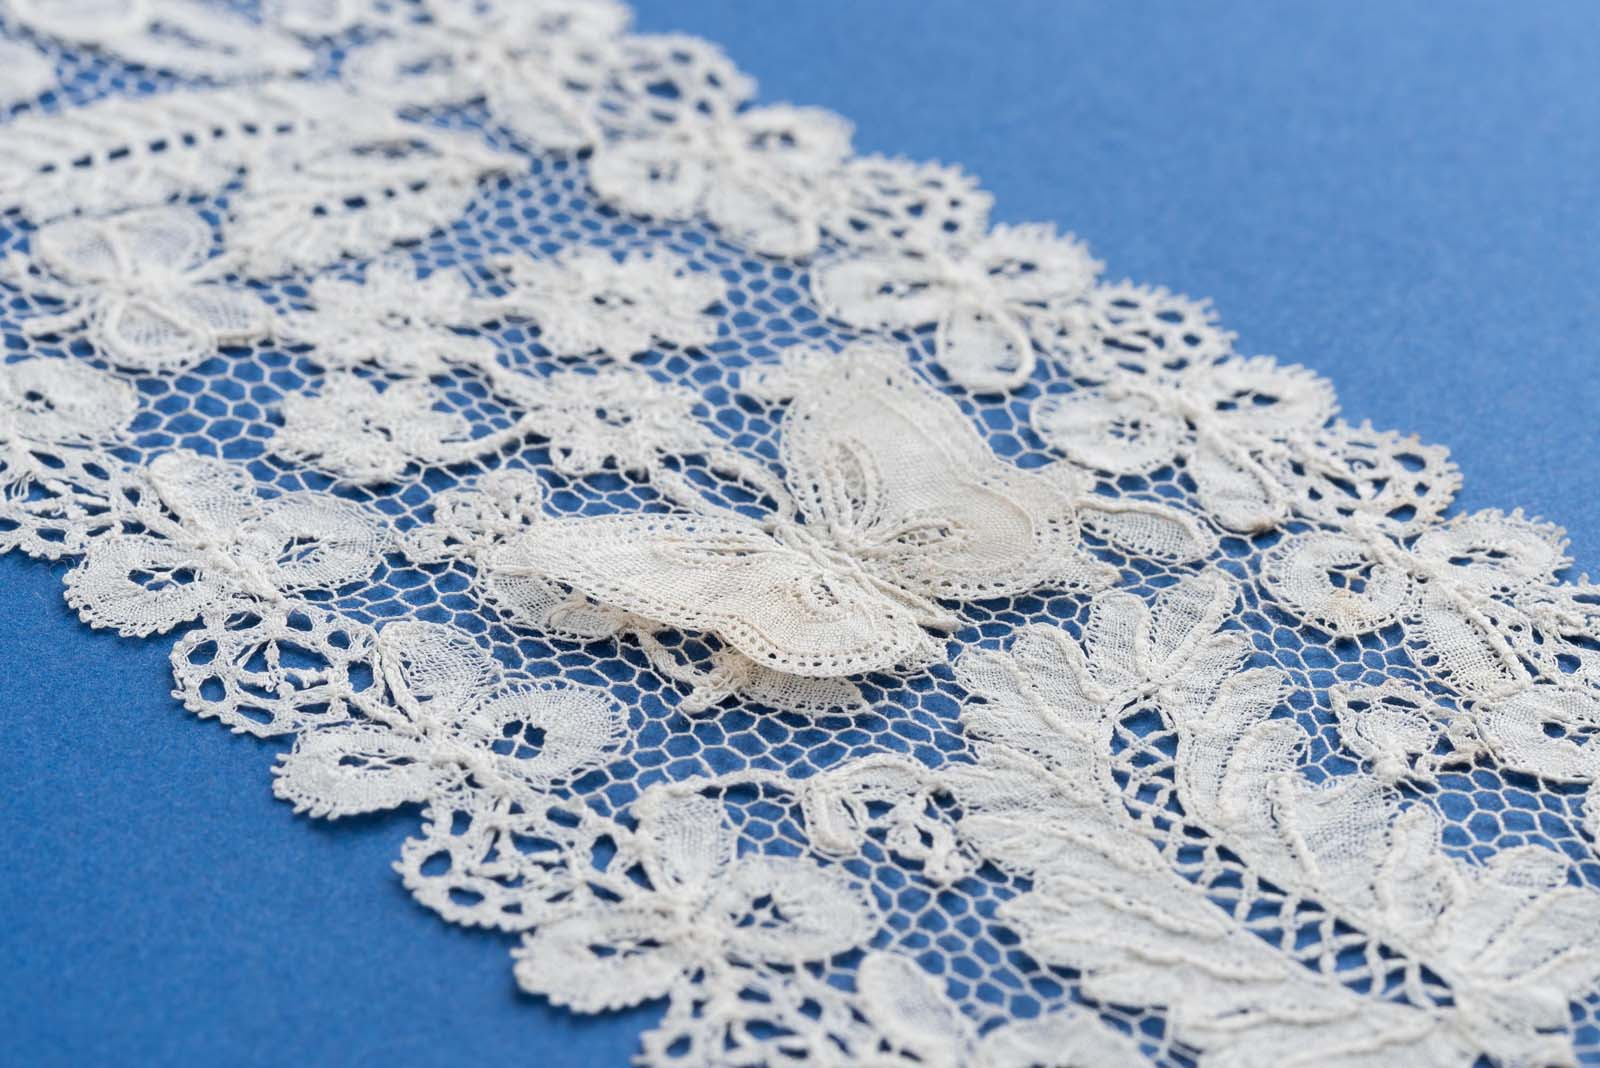 a close up photo of lace work with a butterfly decoration